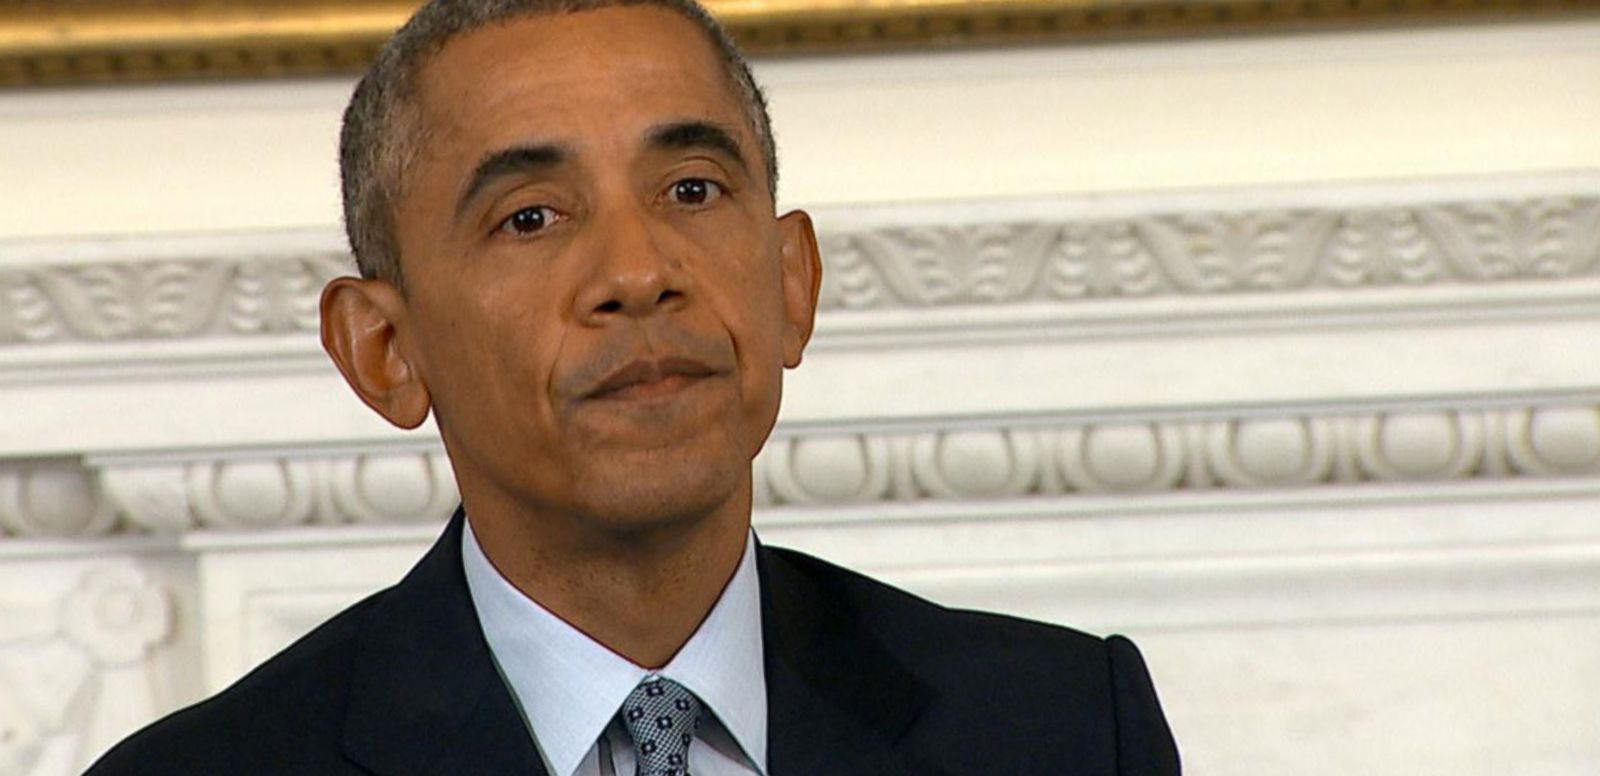 VIDEO: President Obama Reacts to Jeb Bush 'Stuff Happens' Remark